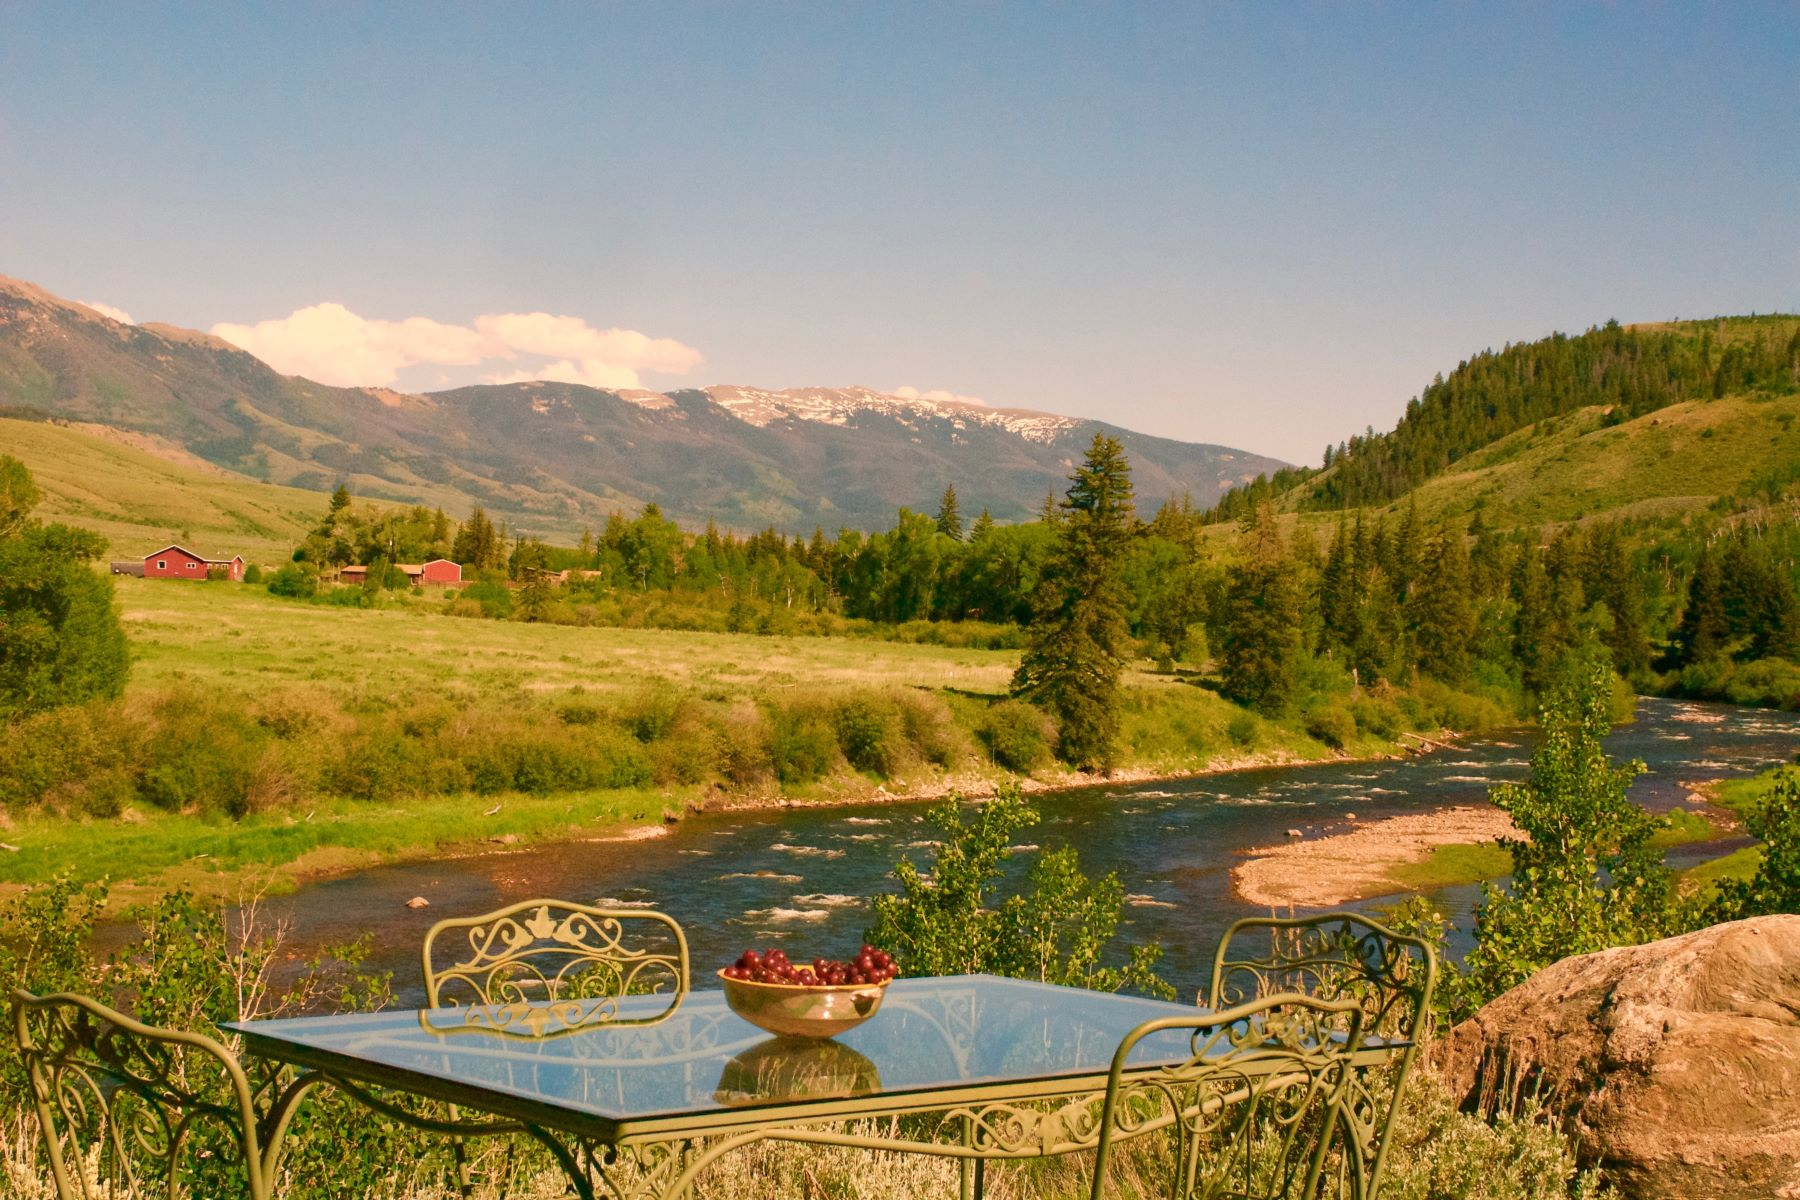 Single Family Home for Sale at Blue River Frontage on 24 Acres 1350 Heeney Road CR 30 Silverthorne, Colorado 80498 United States